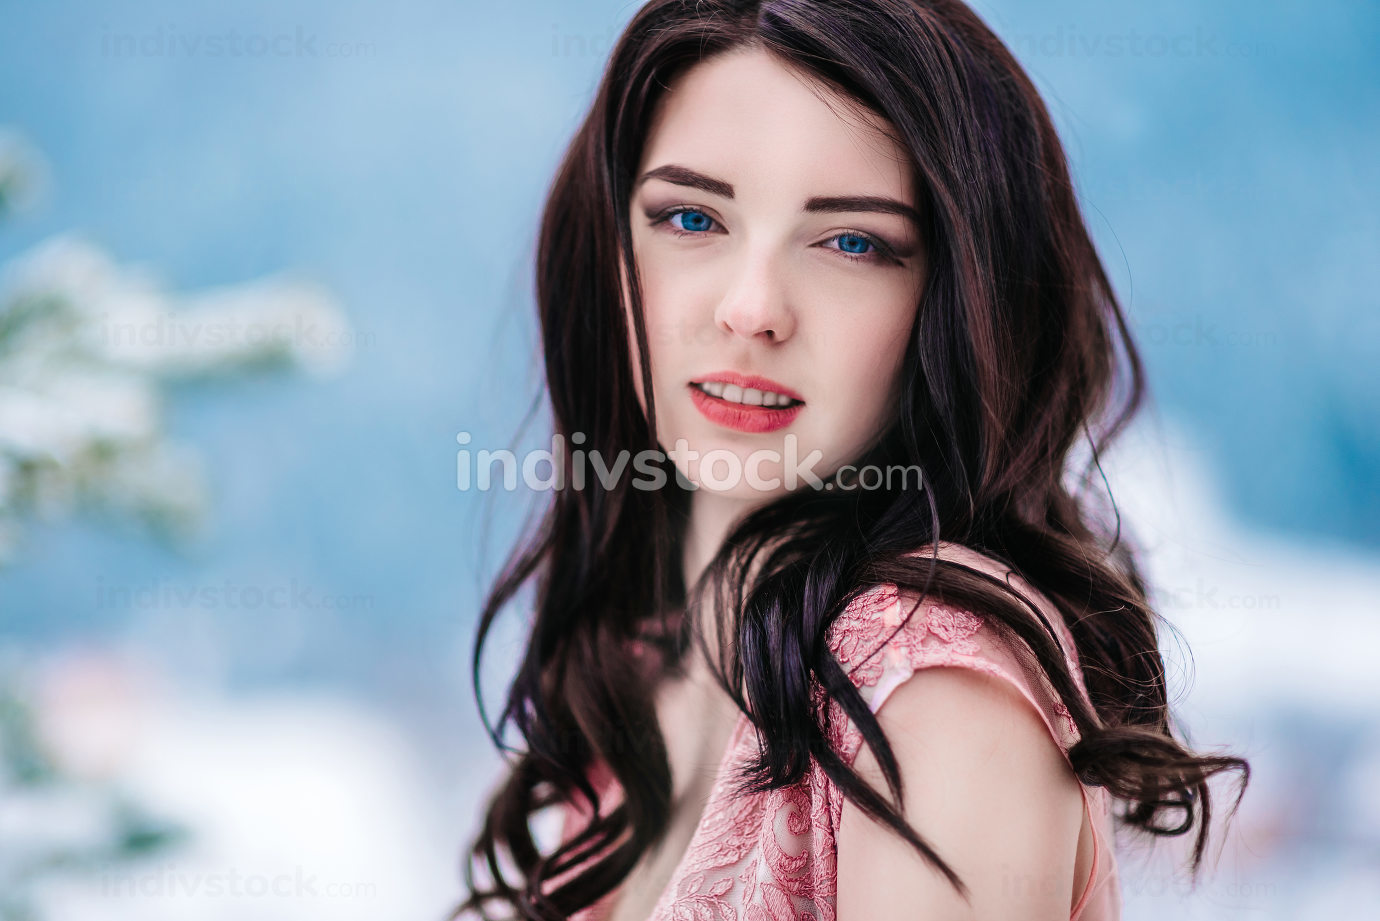 bride with chestnut hair, blue background of the winter mountain